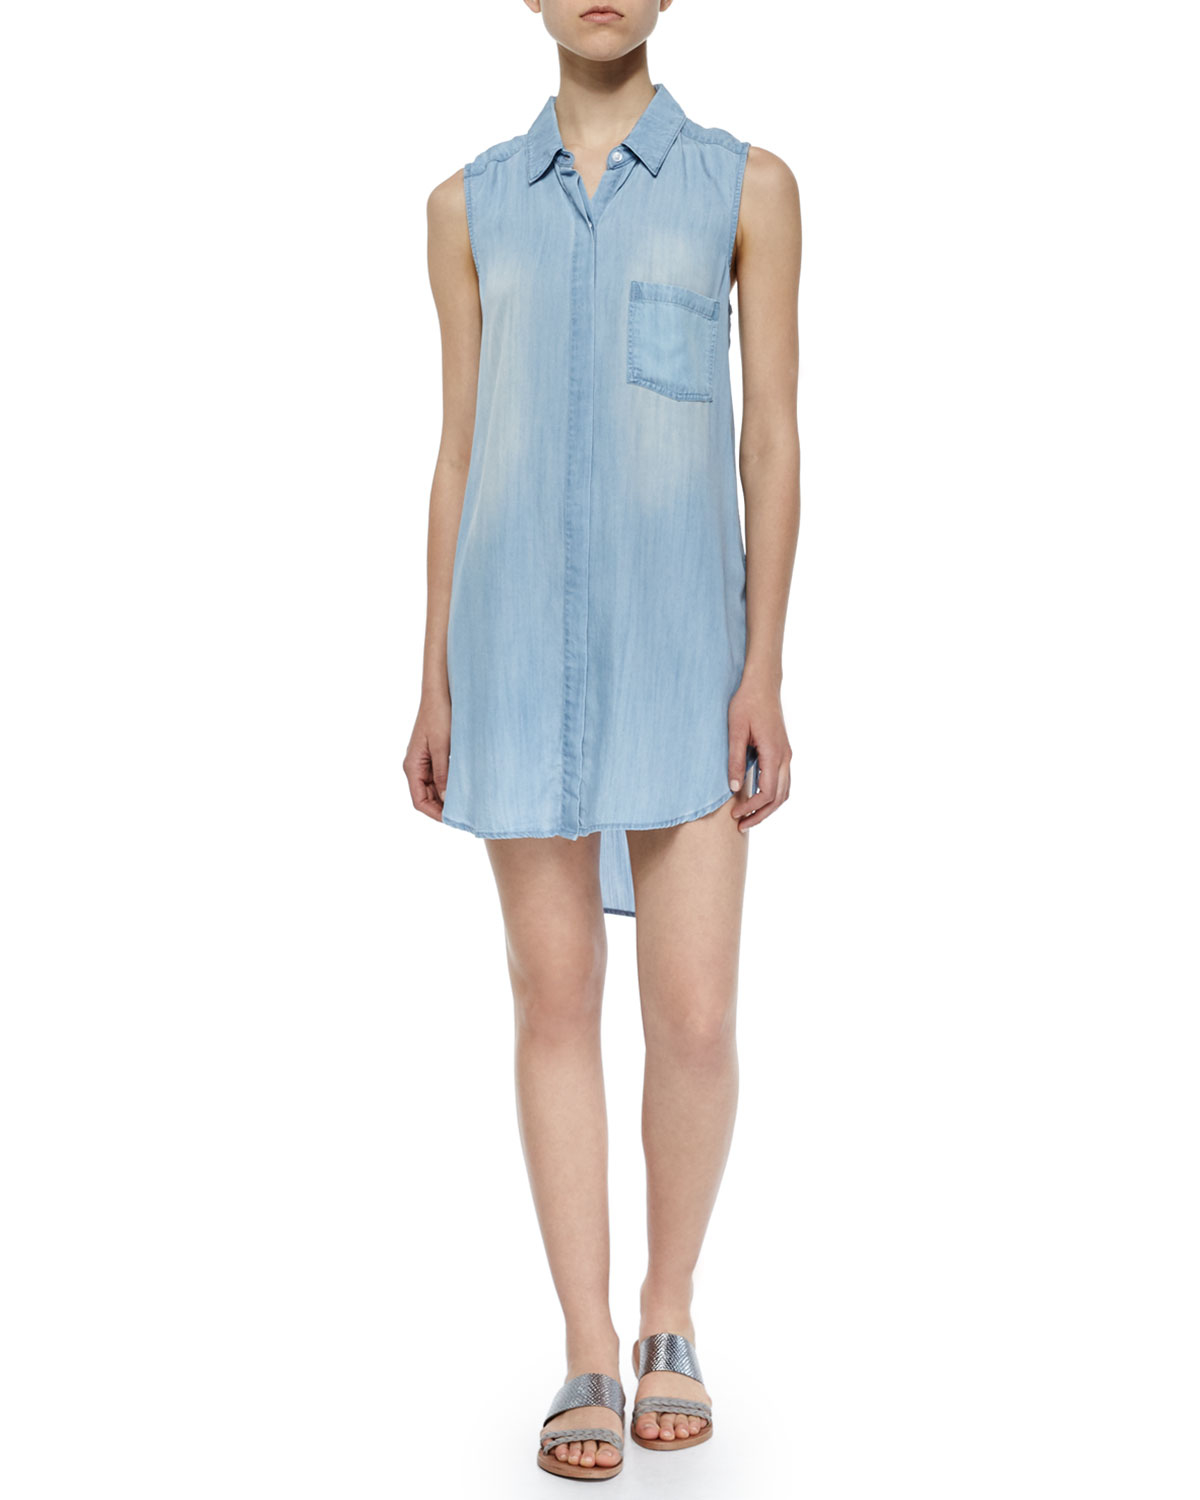 Ralph Lauren Denim Shirt Womens